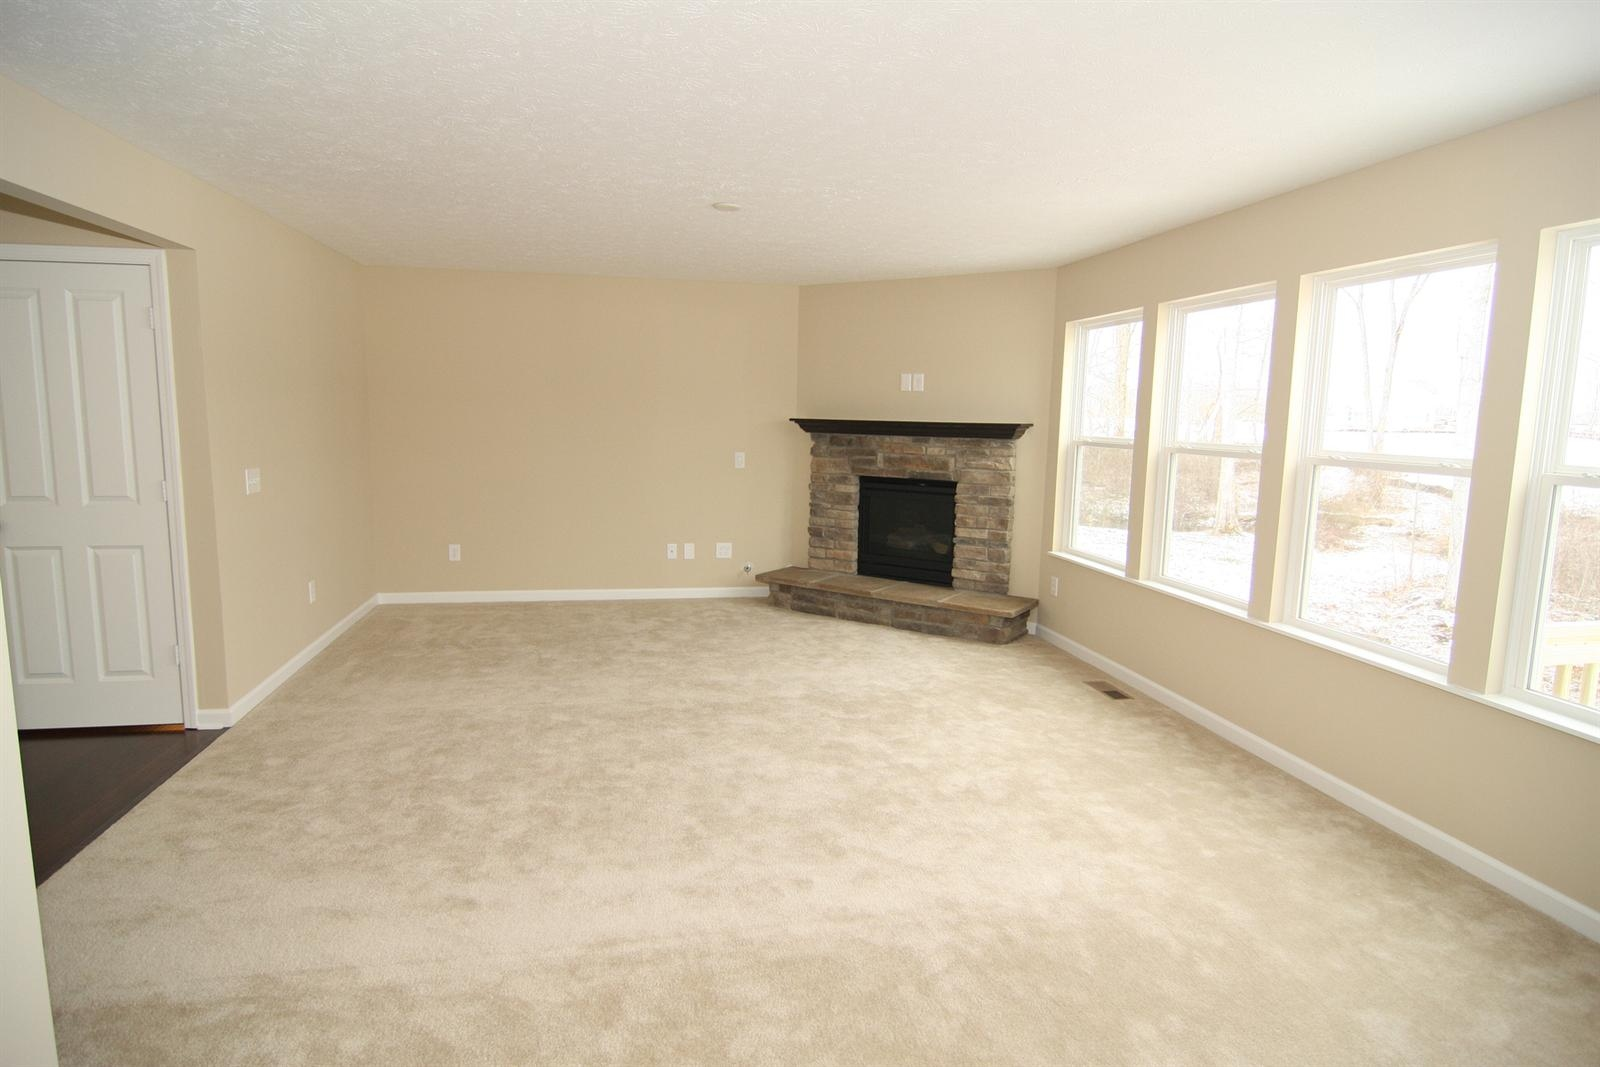 Real Estate Photography - 4852 Corydon Ln, Indianapolis, IN, 46239 - Location 5